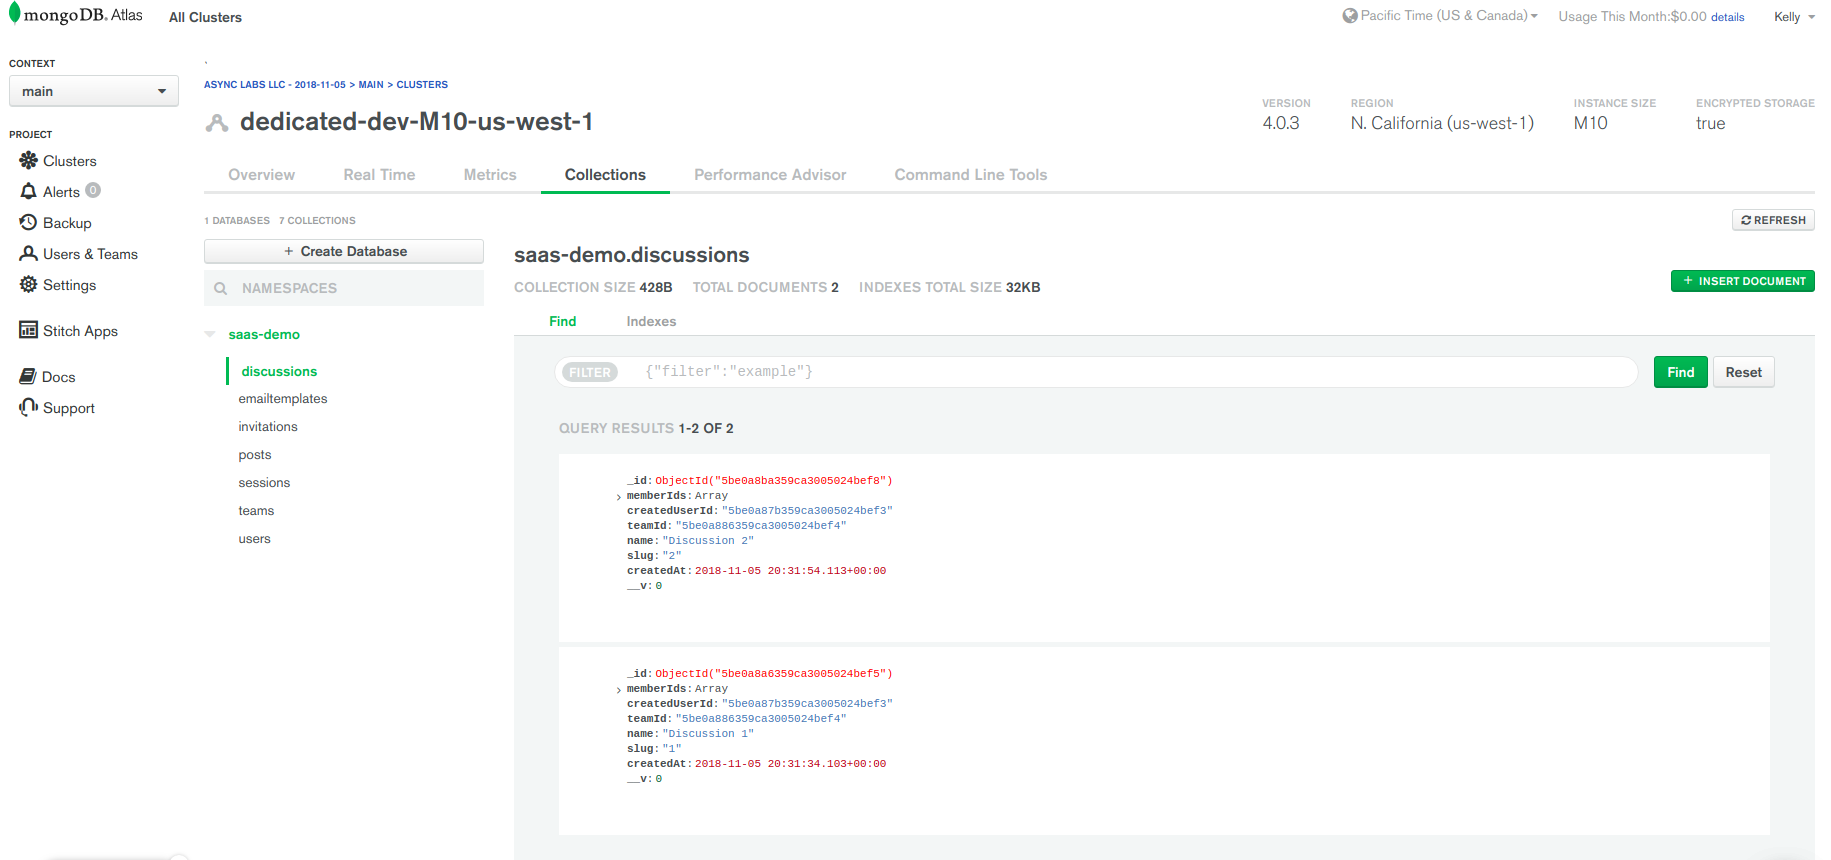 Chapter 2: mLab is becoming a part of MongoDB Atlas · Issue